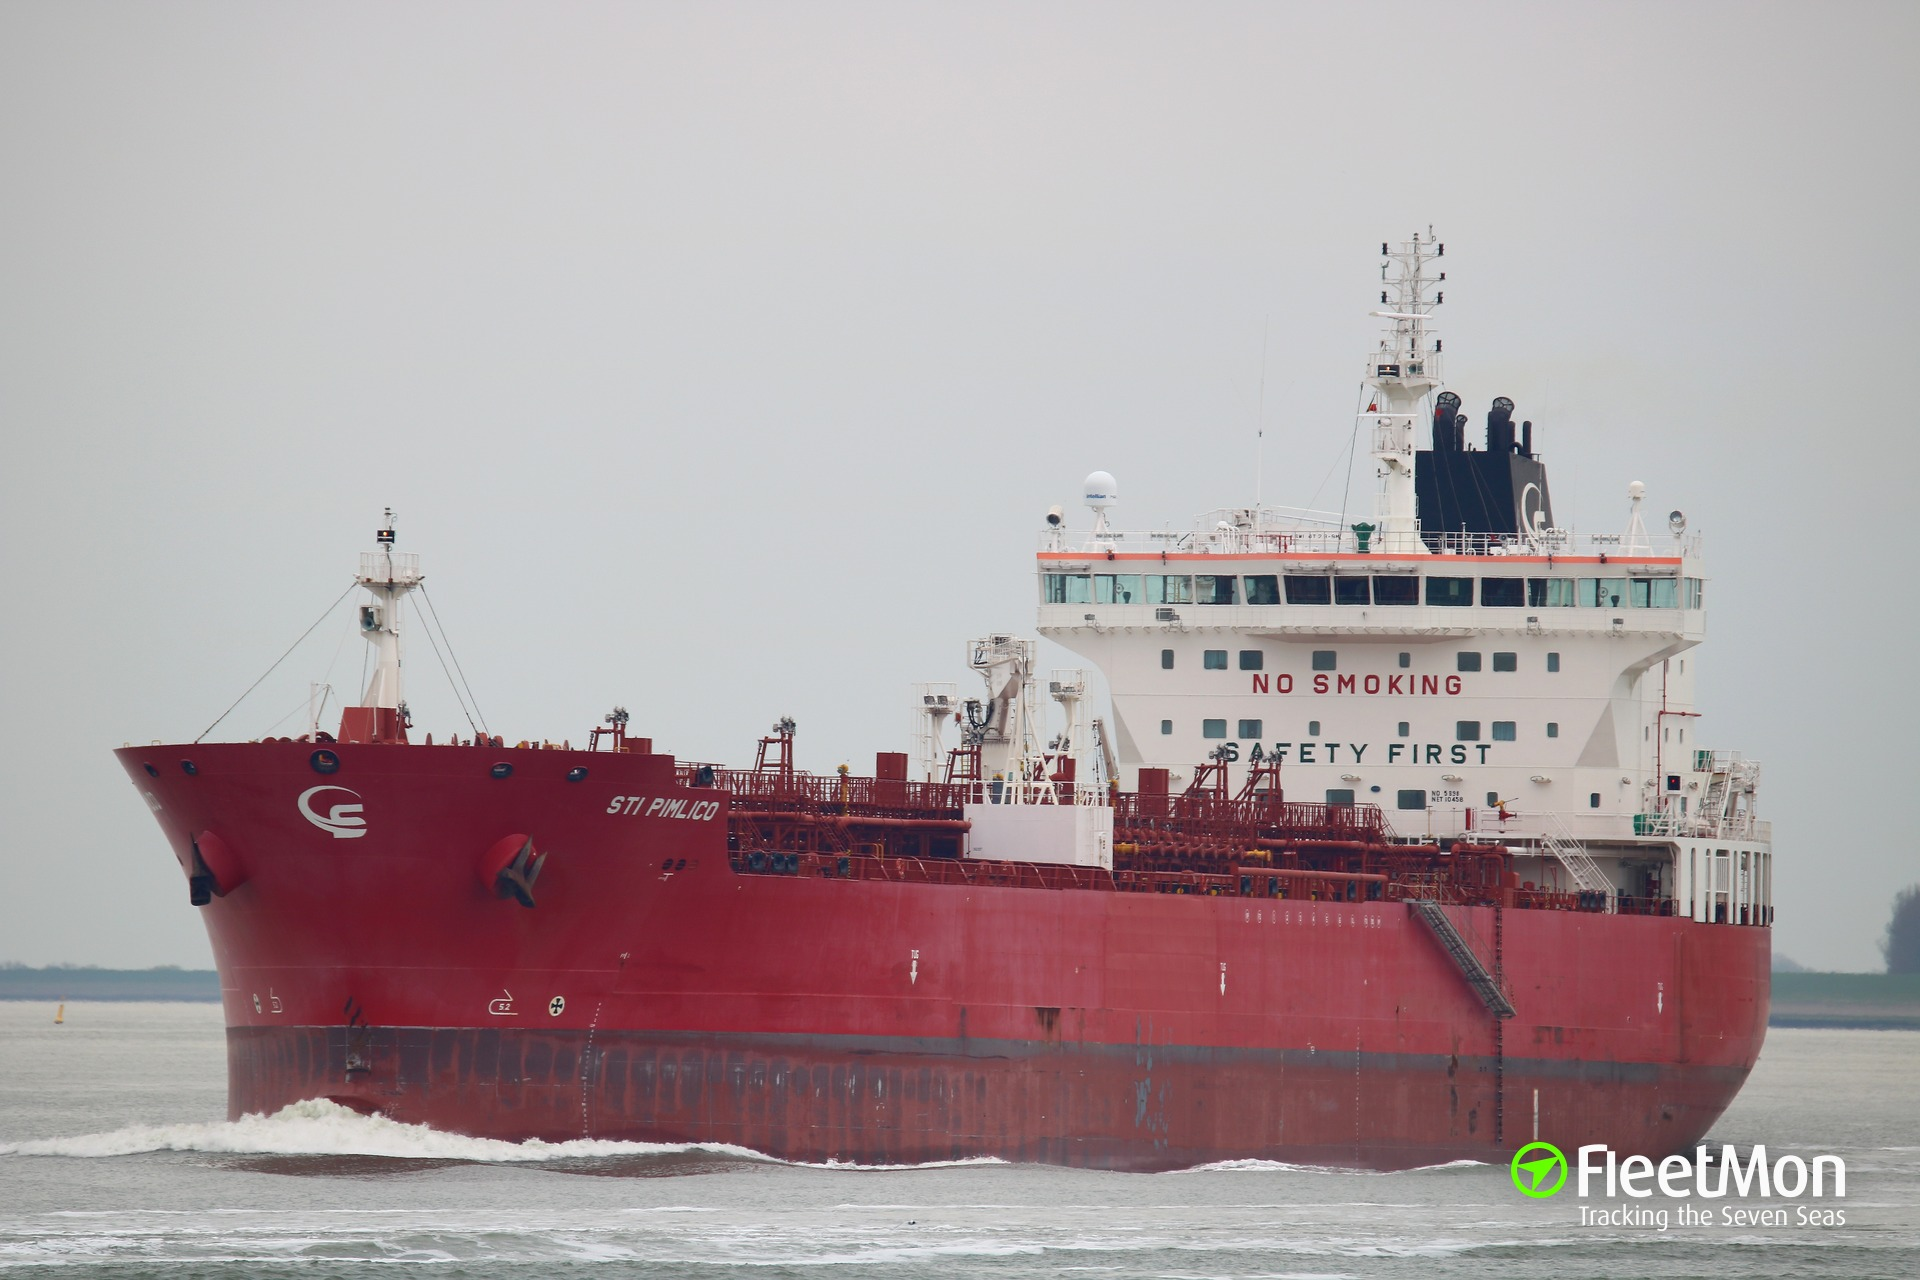 Statement of technical manager of product tanker STI Pimlico